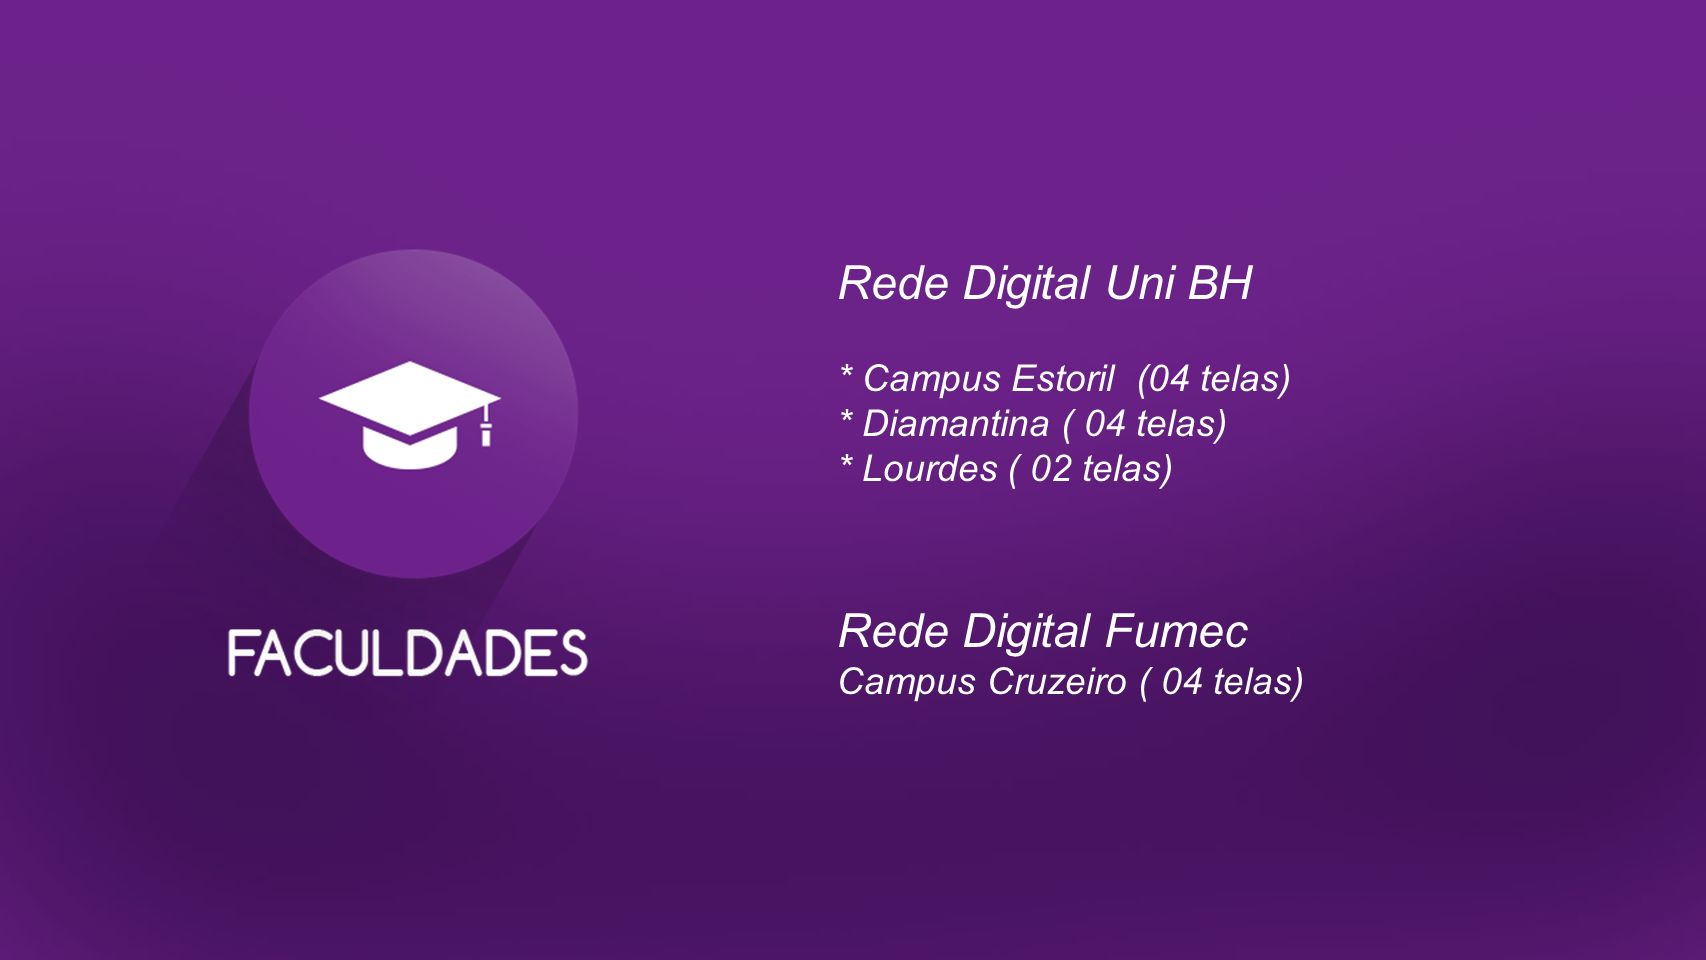 Rede Digital Uni BH Rede Digital Fumec * Campus Estoril (04 telas)